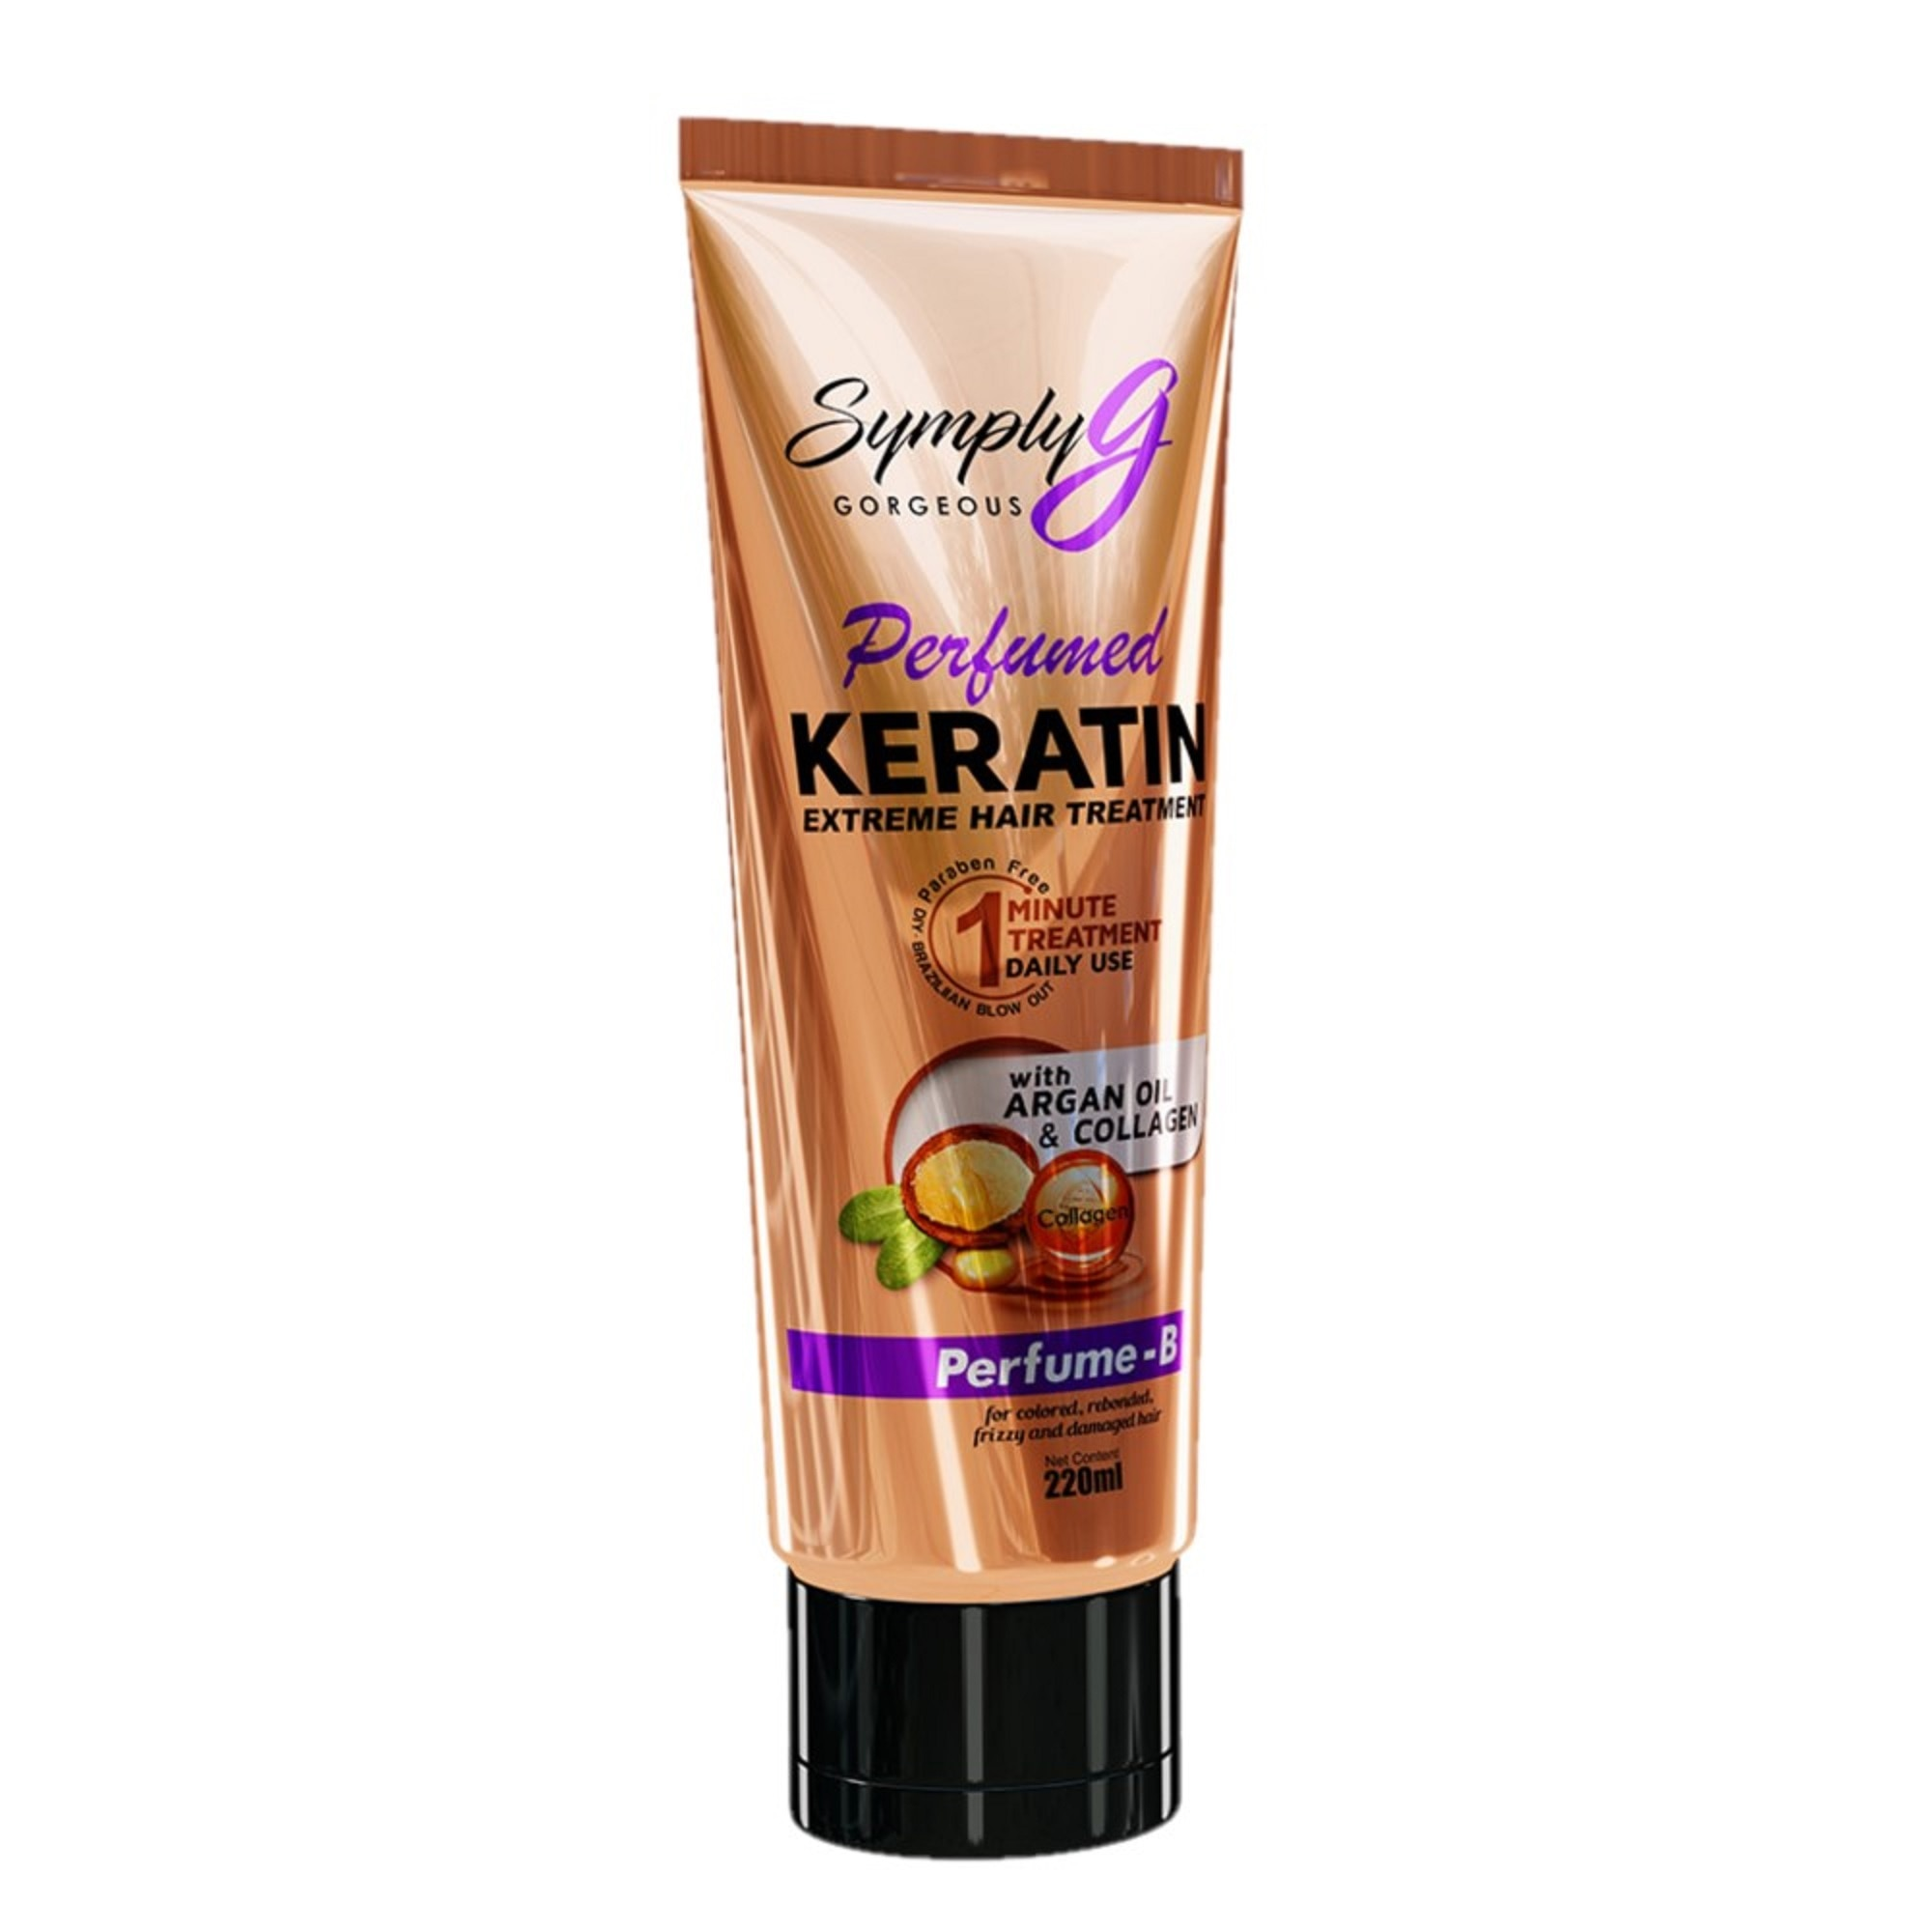 SYMPLY GSymply G Perfume B Keratin Extreme Hair Treatment With Argan Oil & Collagen,Treatment Condtioner-